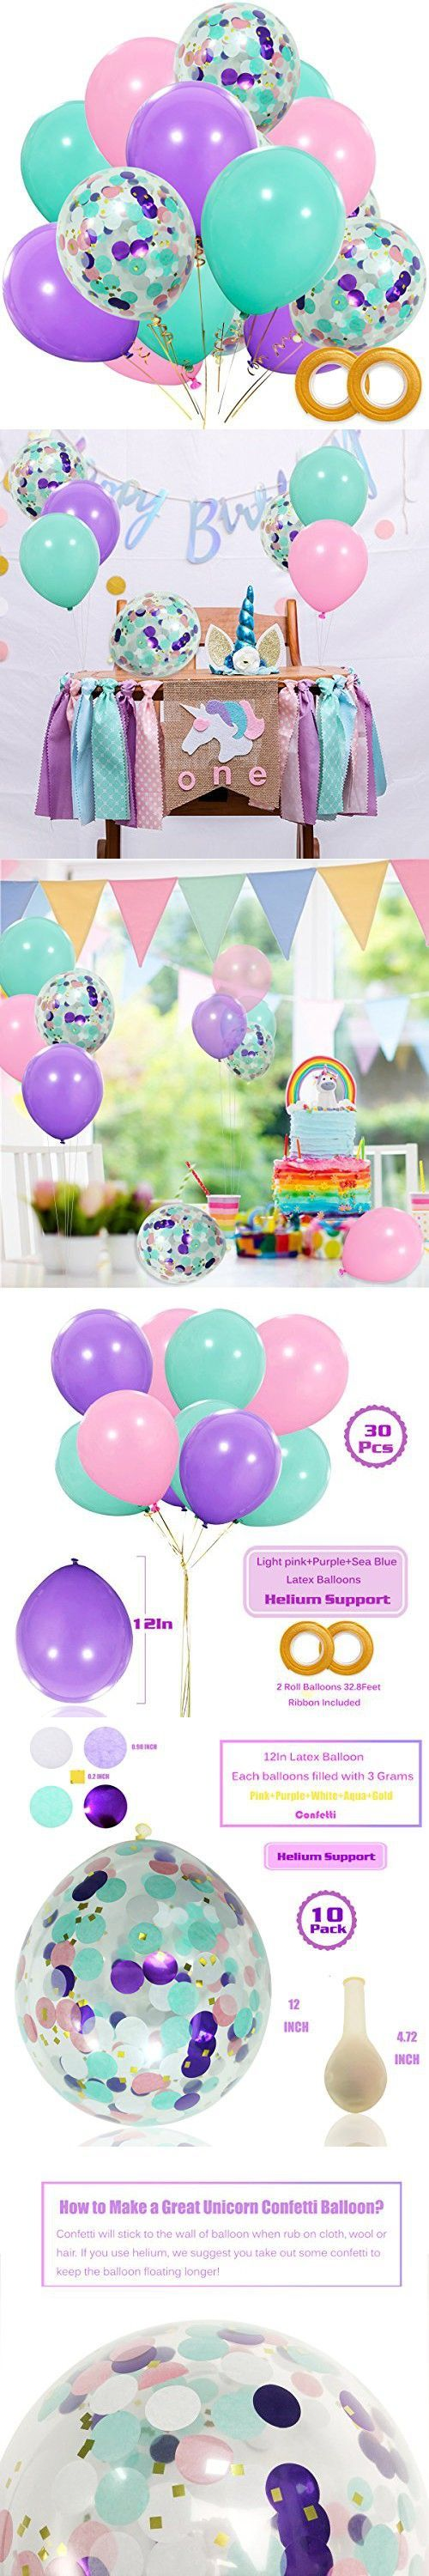 Unicorn Balloons 40 Pack, 12 inch Light Purple Pink Seafoam Blue Latex Balloons with Confetti Balloon for Party Supplies Graduation Wedding Baby Showe...